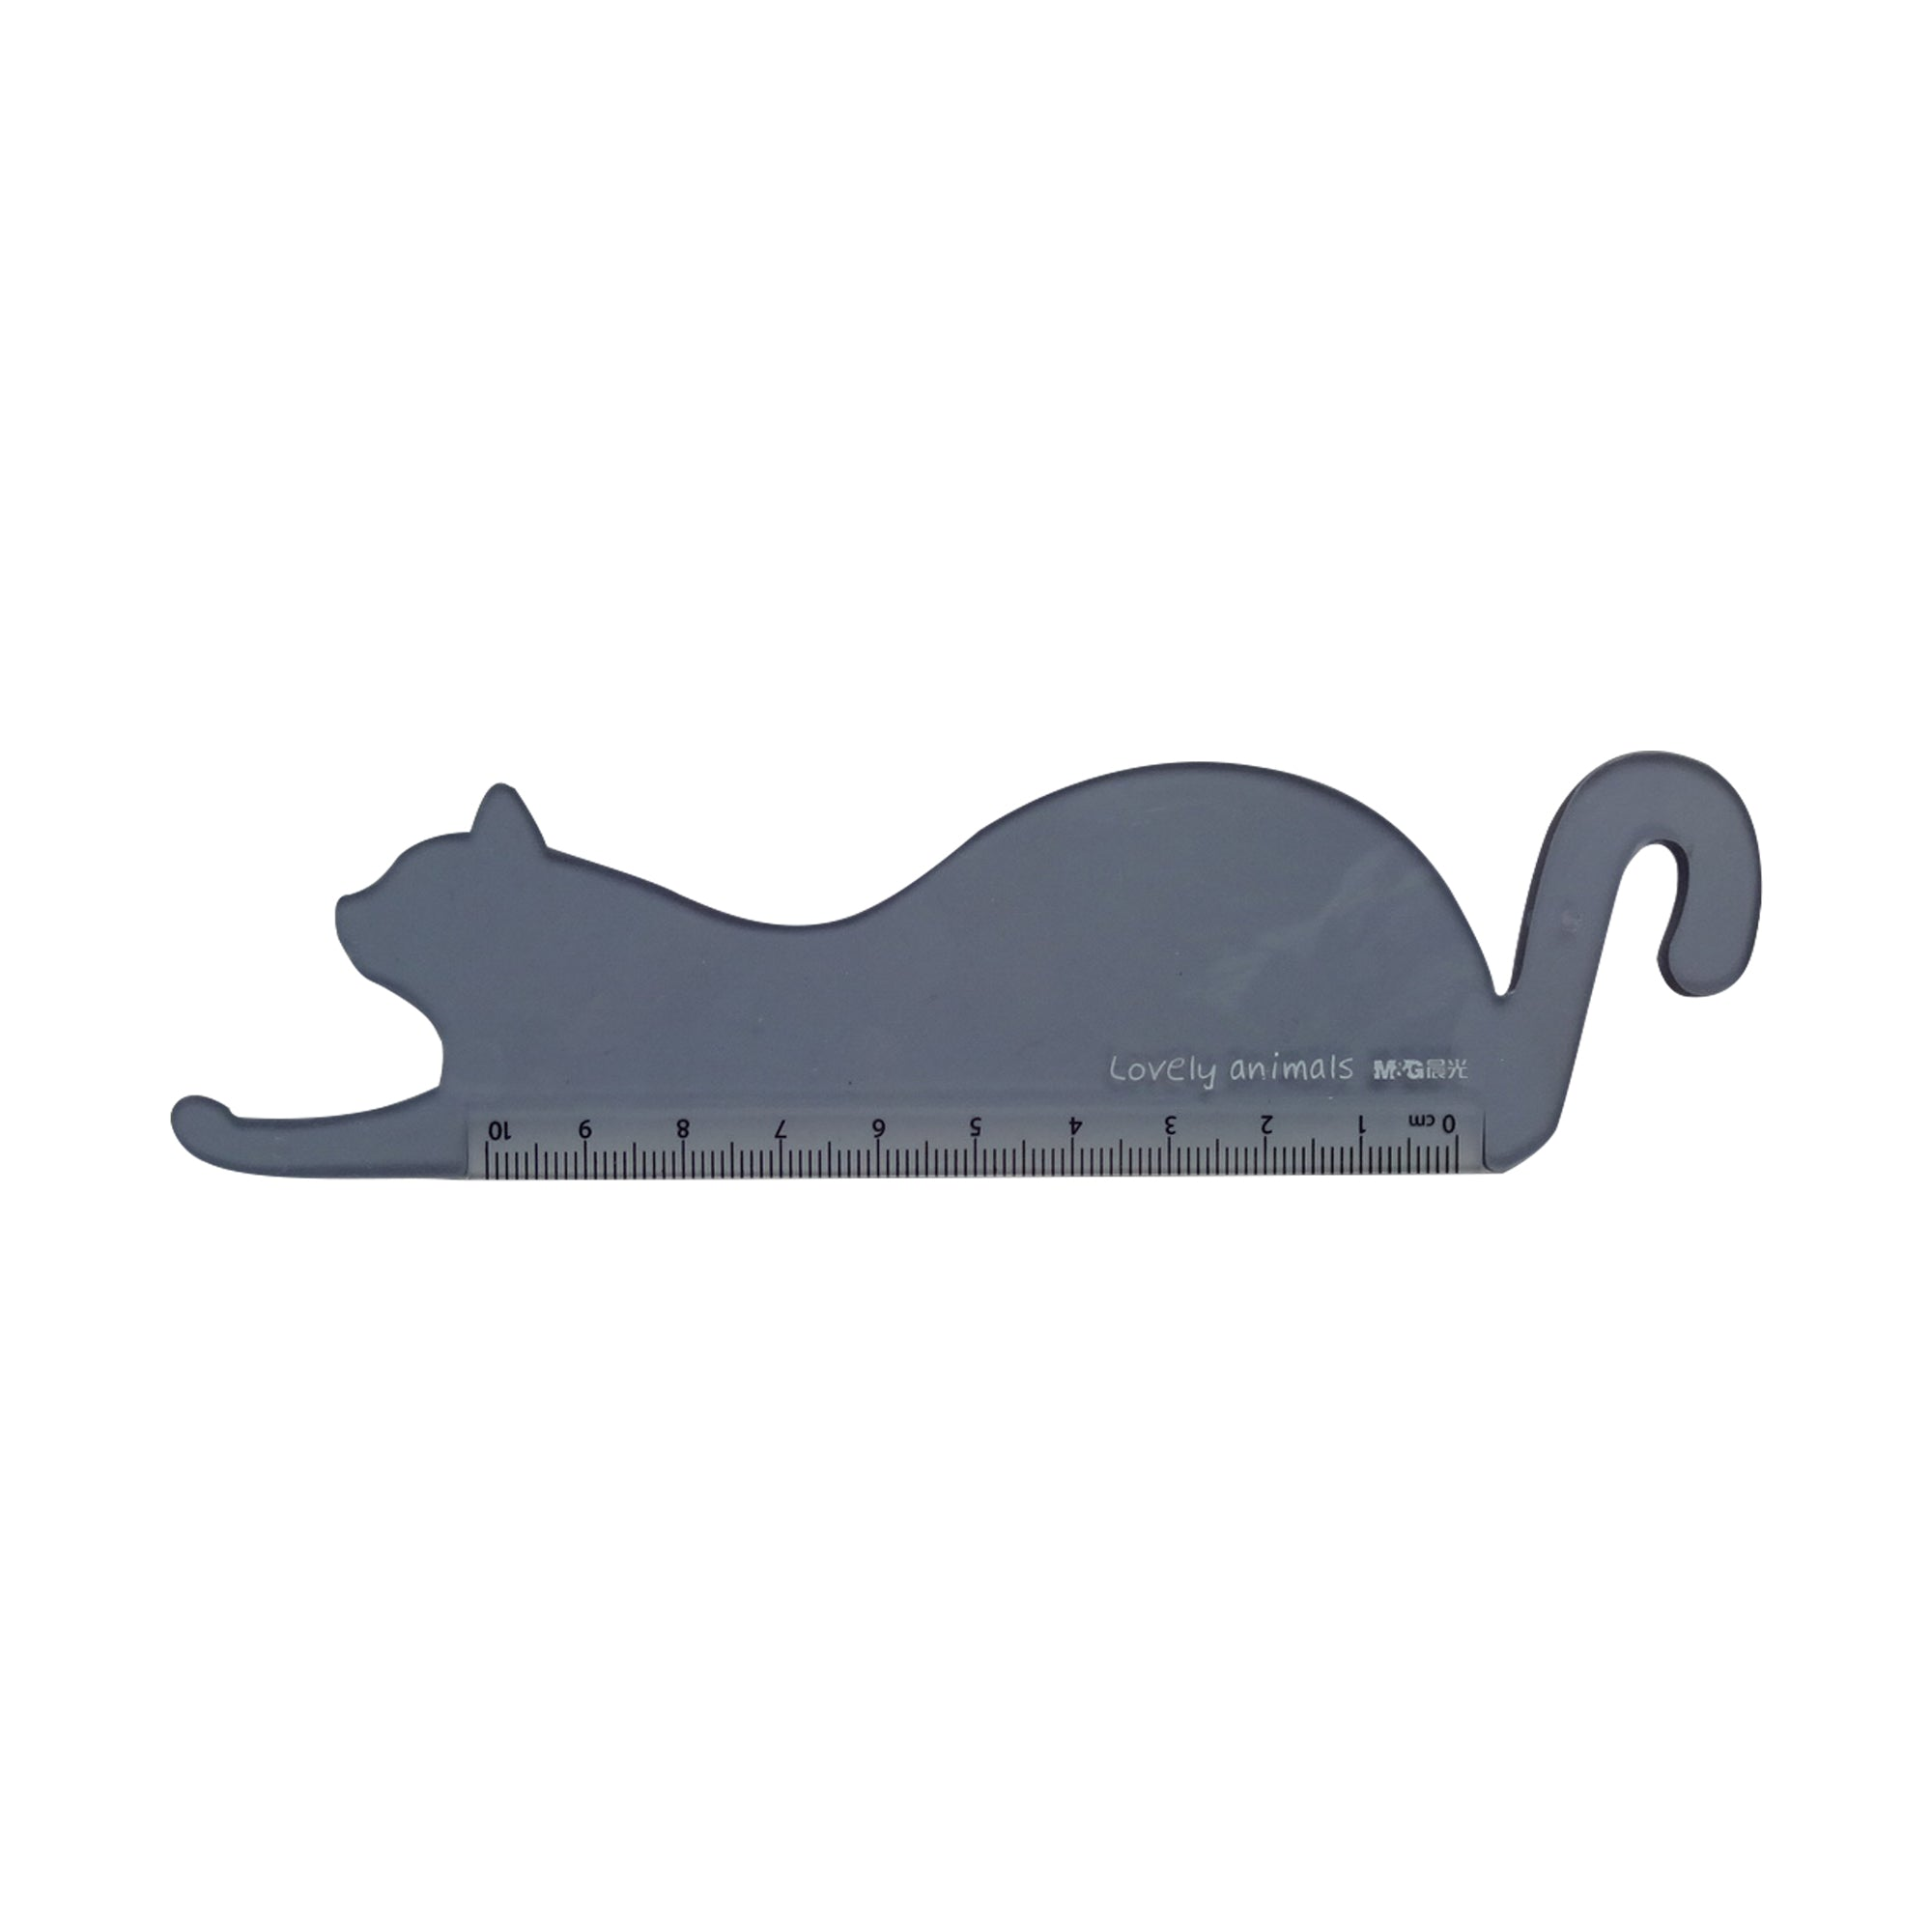 Plastic Ruler - Cat